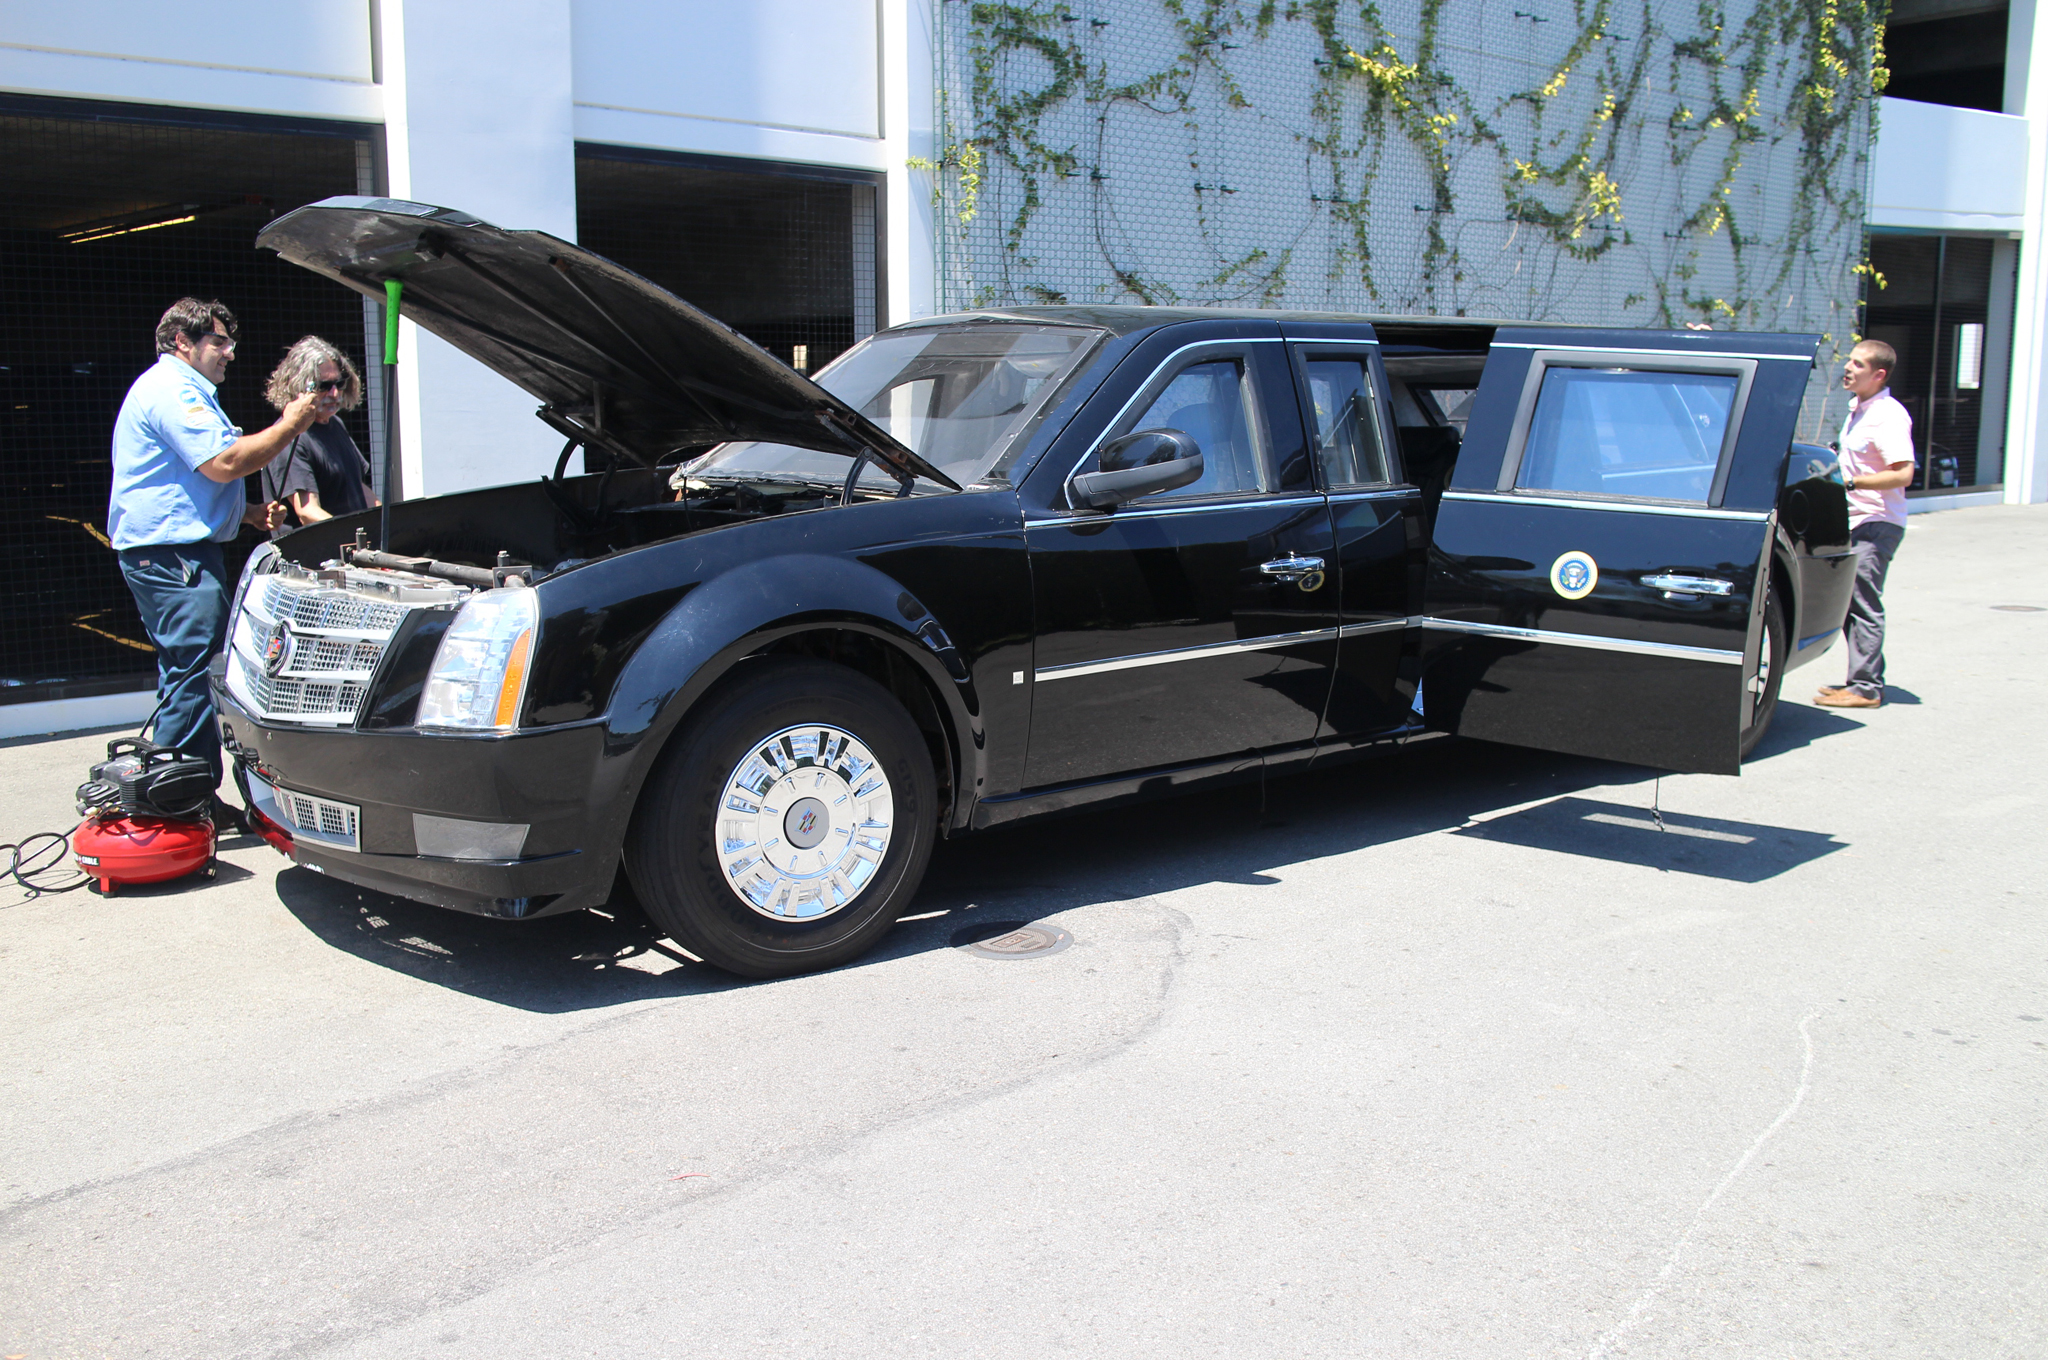 The Presidential Limo , Otherwise Known as The Beast